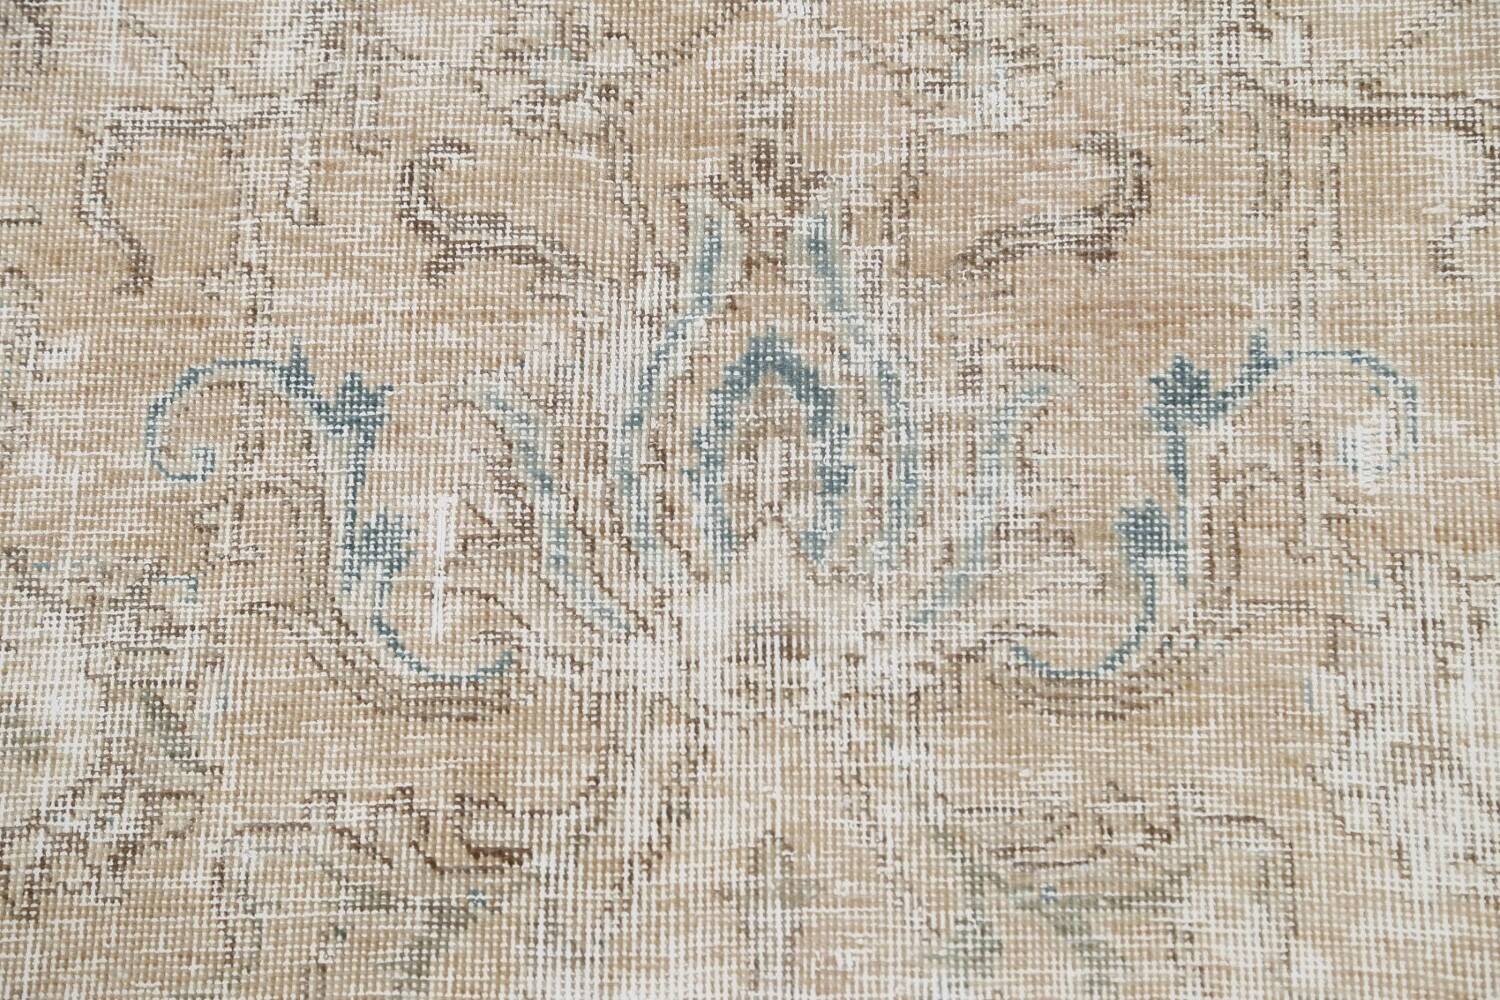 Muted Floral Tabriz Persian Area Rug 10x11 image 10